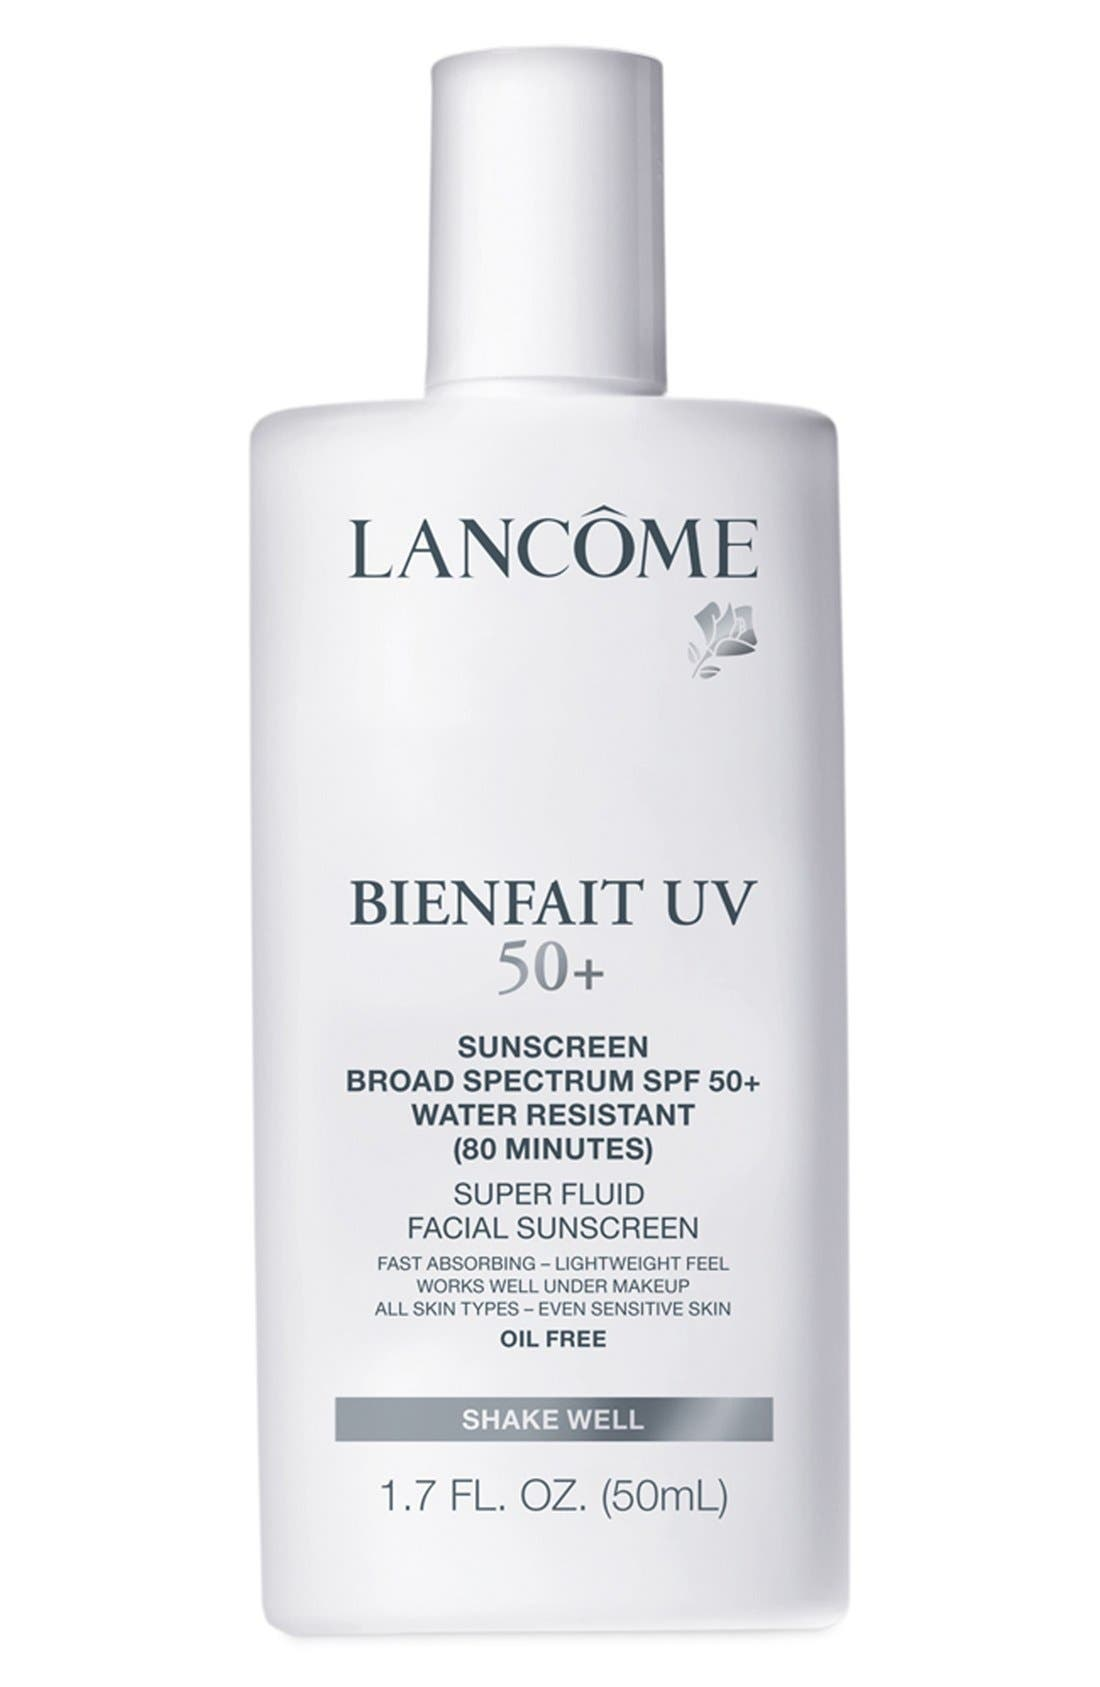 Bienfait UV Super Fluid Facial Sunscreen SPF 50+,                             Main thumbnail 1, color,                             000